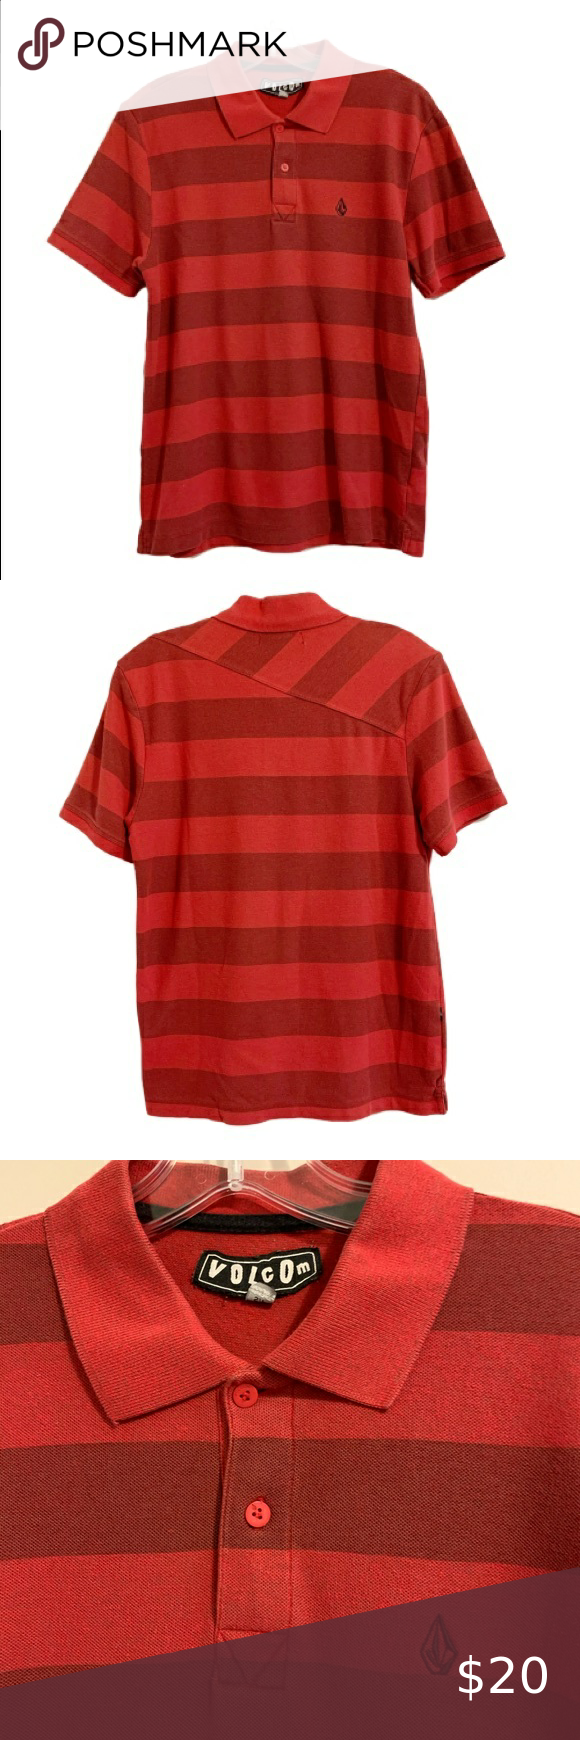 Volcom Red Stripe Logo Polo Shirt Volcom Short Sleeve Polo Shirt Red And Dark Red Stripe Pattern Volcom Stone Embroidered On Chest Shirts Polo Shirt Red Stripe